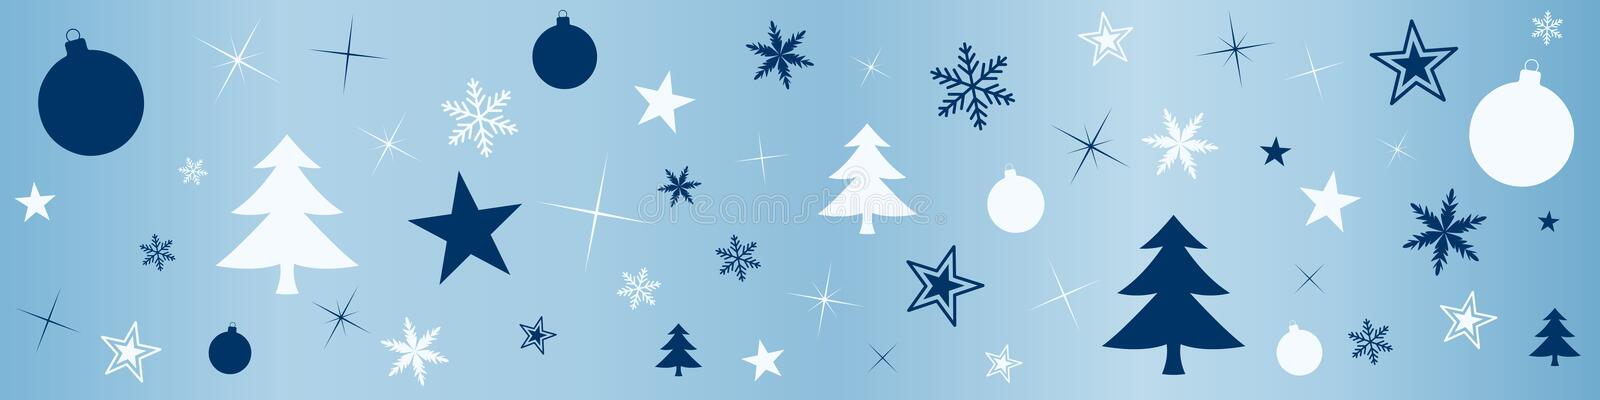 Illustration with Christmas balls and various festive ornaments stock illustration